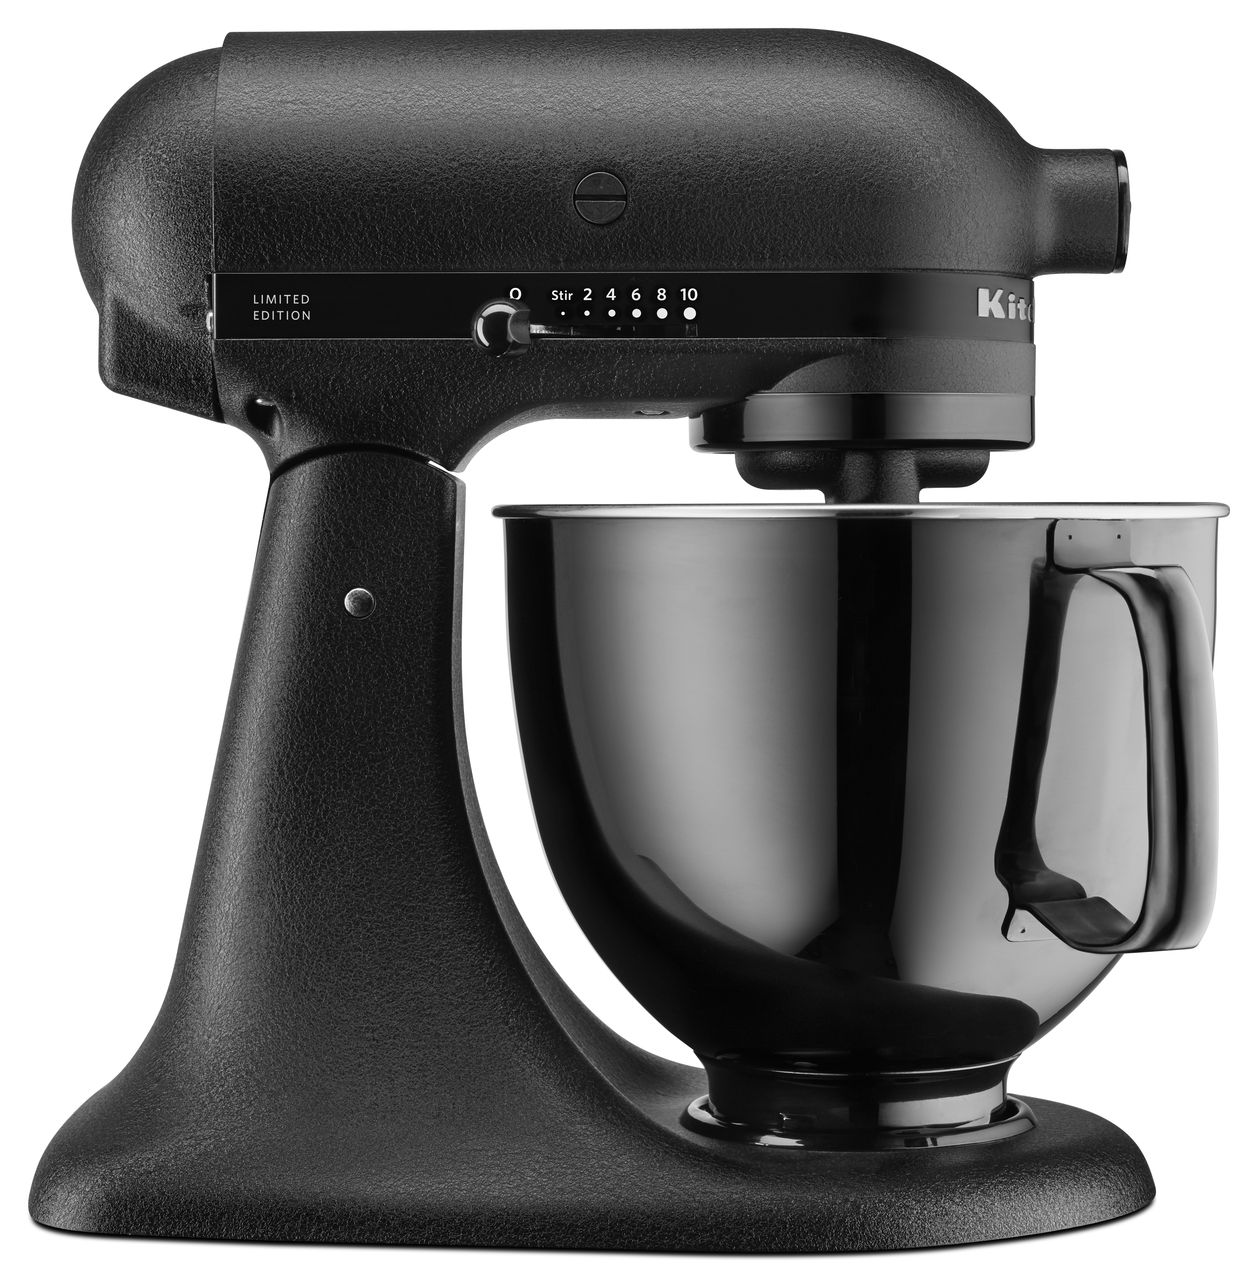 The KitchenAid® Artisan® Black Tie Limited Edition Stand Mixer Is Made With  All Black Finishes And Premium Materials, Including Die Cast Zinc, ...